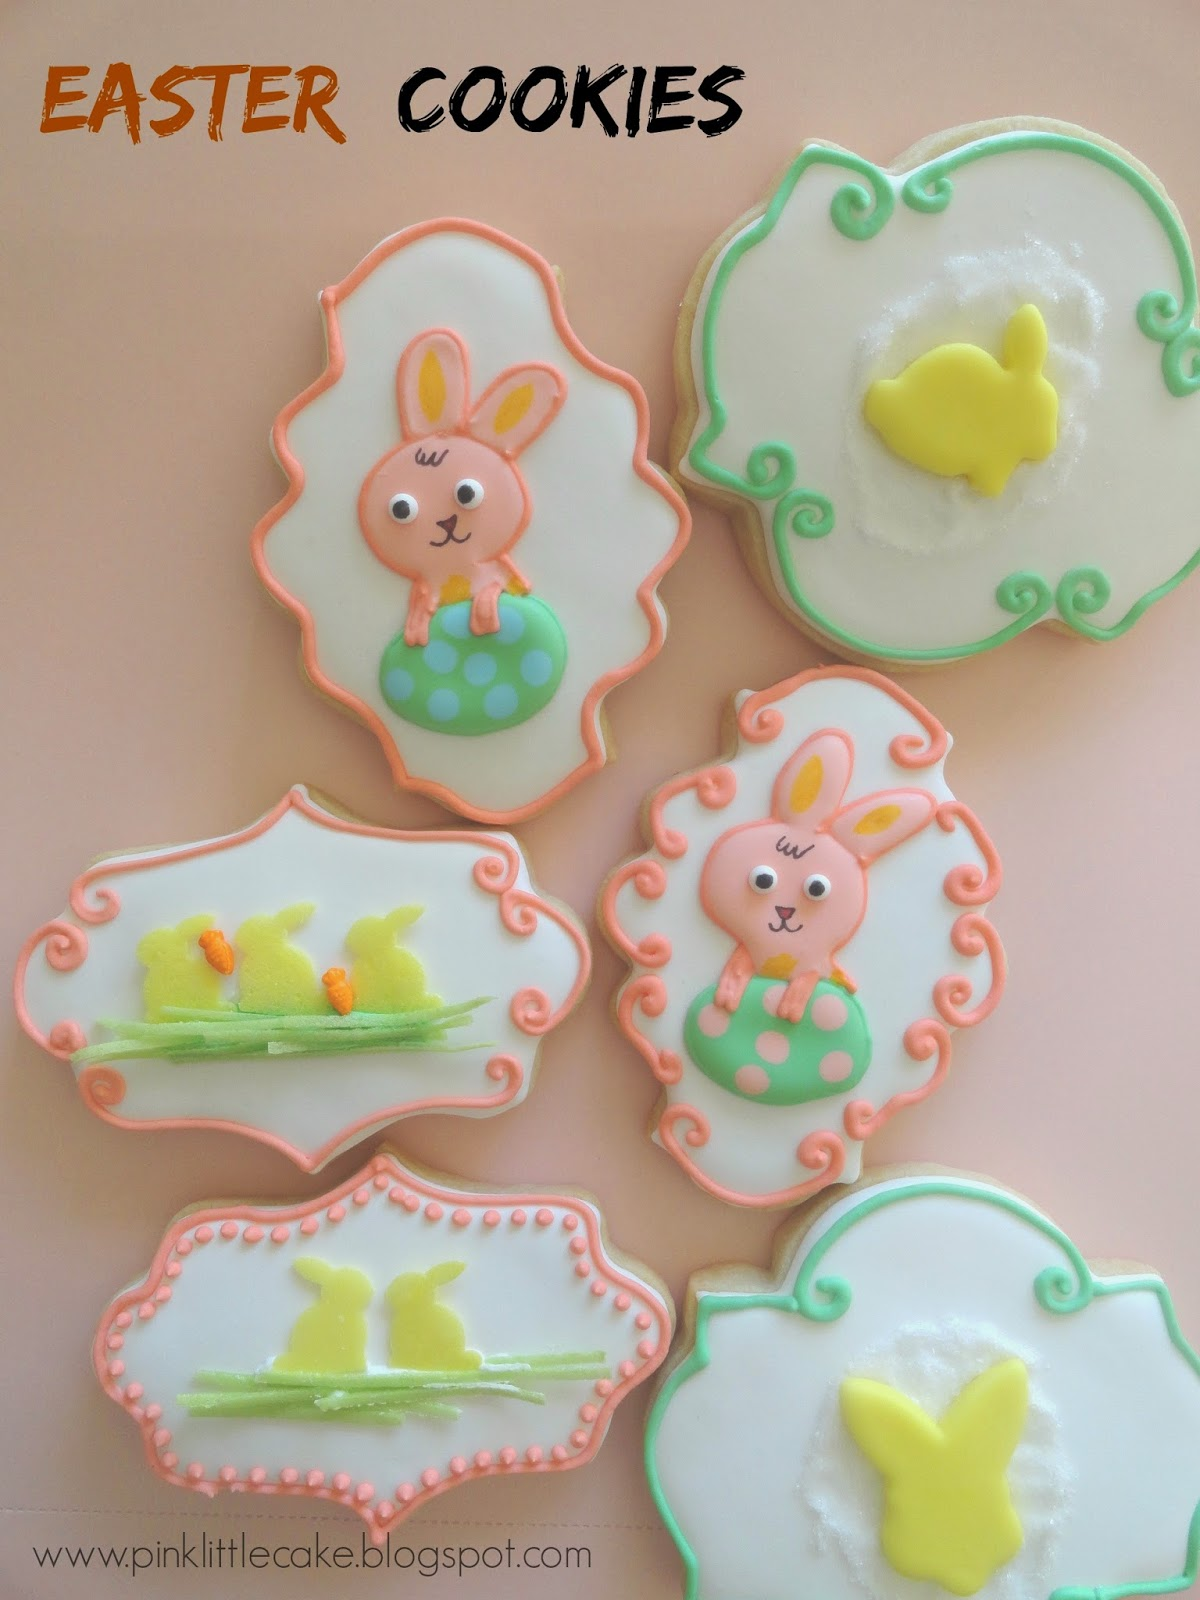 Easter Cookies using Plaque Cutters